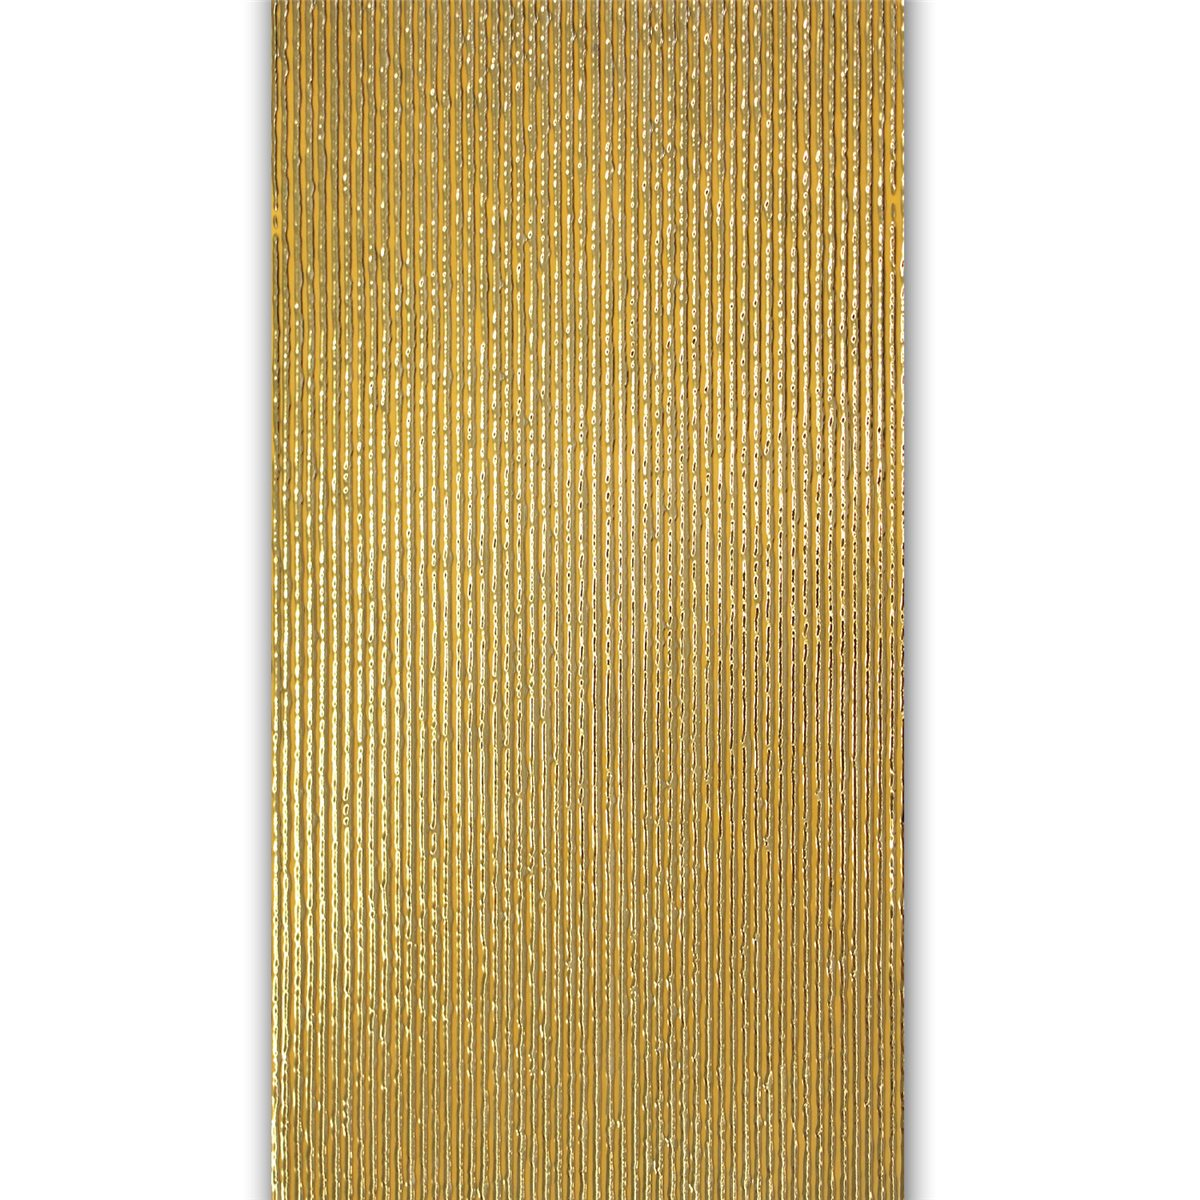 Wall Decor Tiles Gold Ribbed 30x60cm Www Mosafil Co Uk